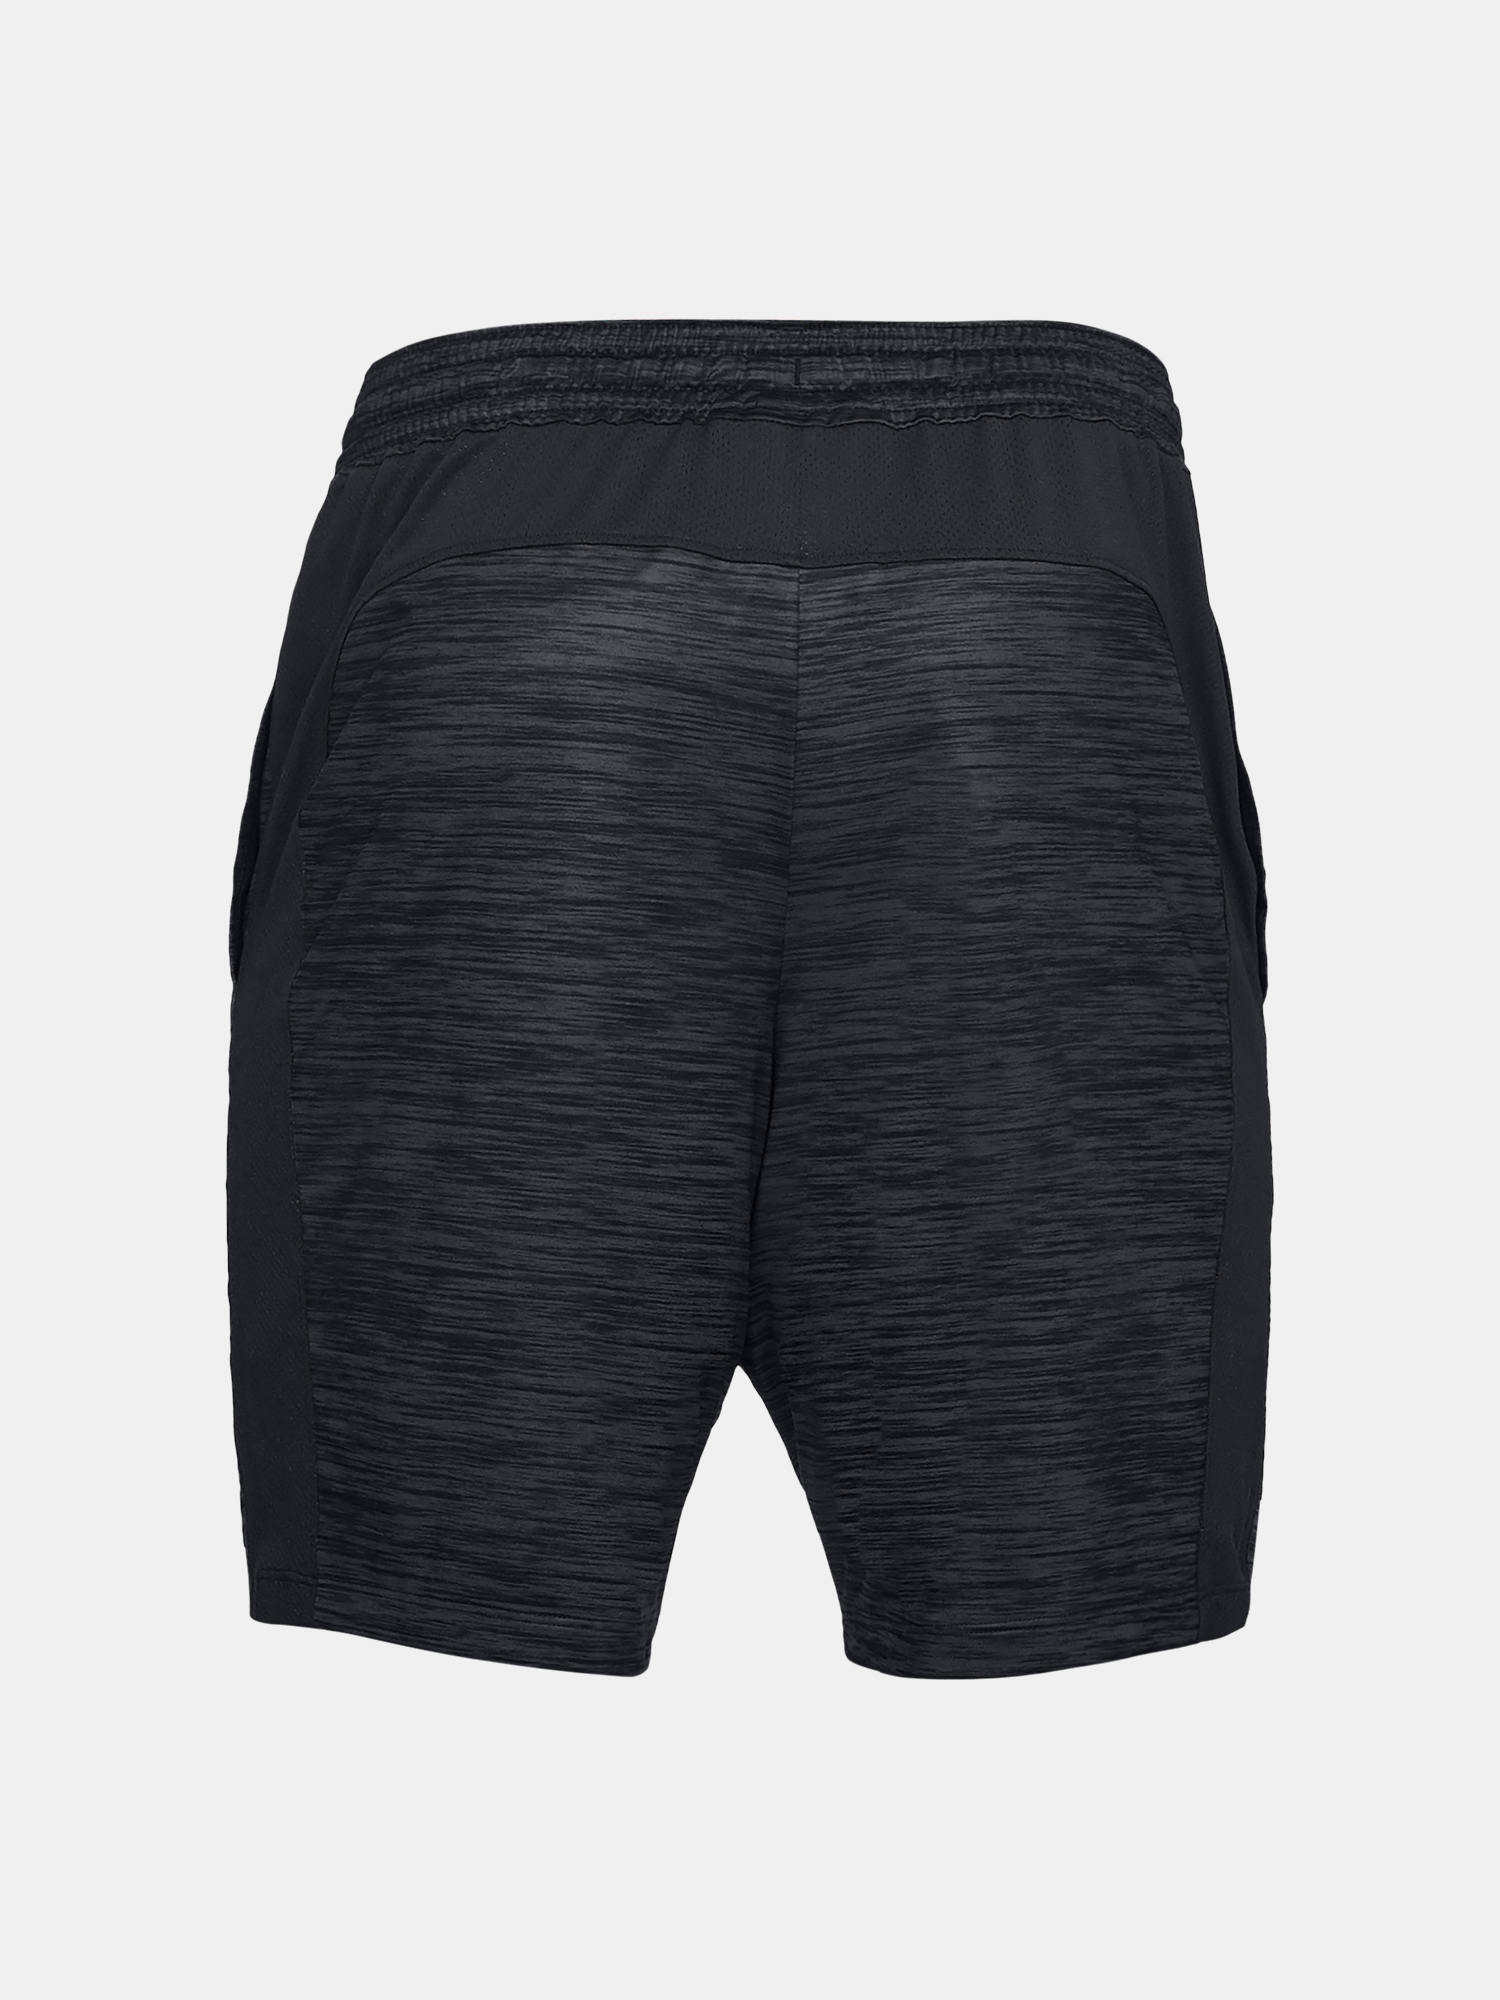 Kraťasy Under Armour UA MK-1 Twist Shorts-BLK (4)